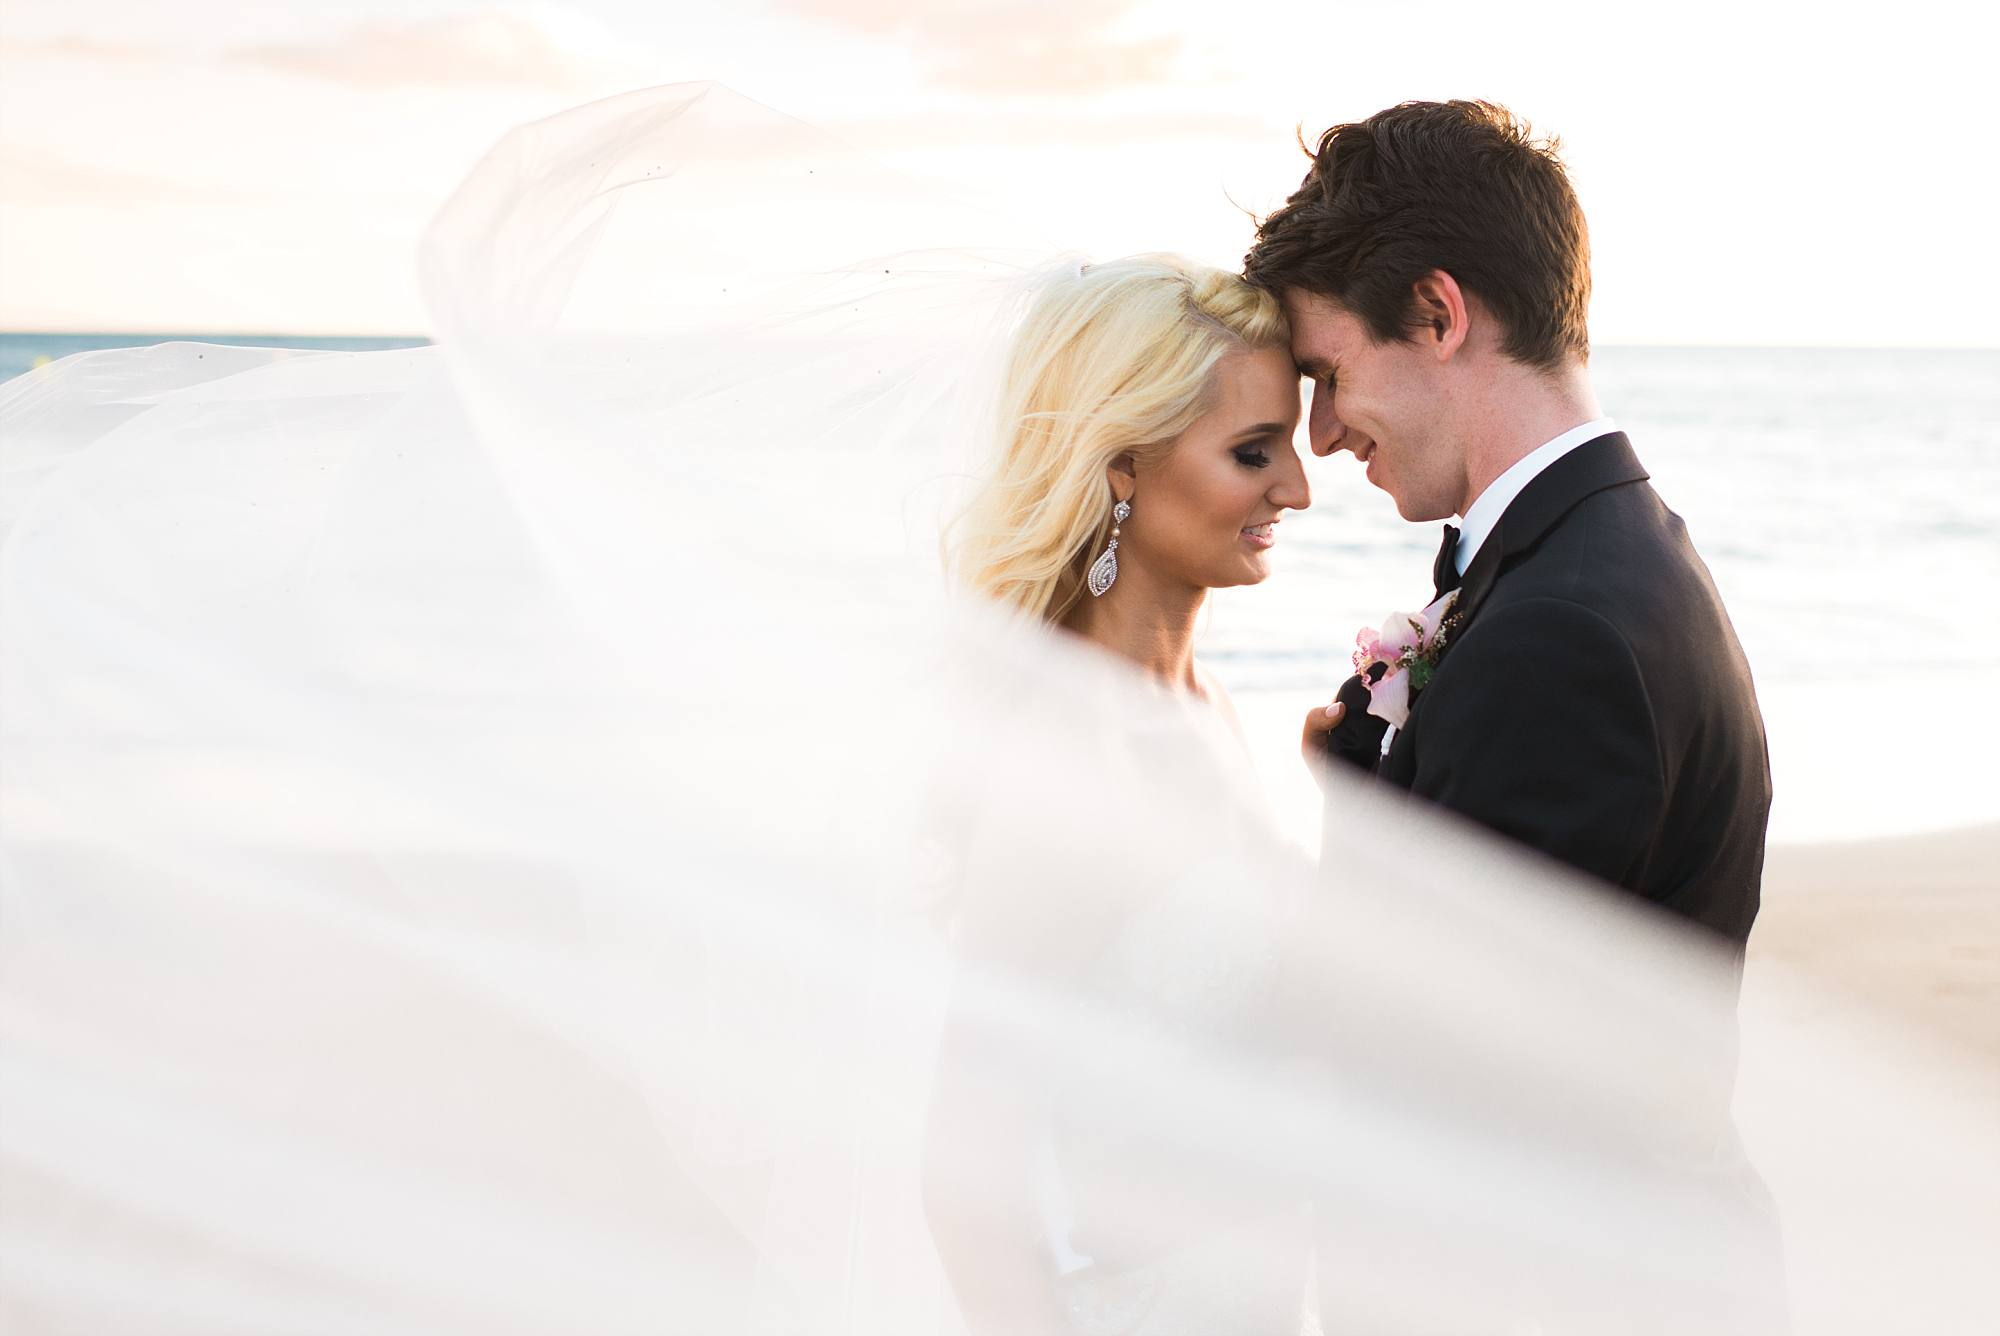 bride and groom standing head to head with veil swooping around them